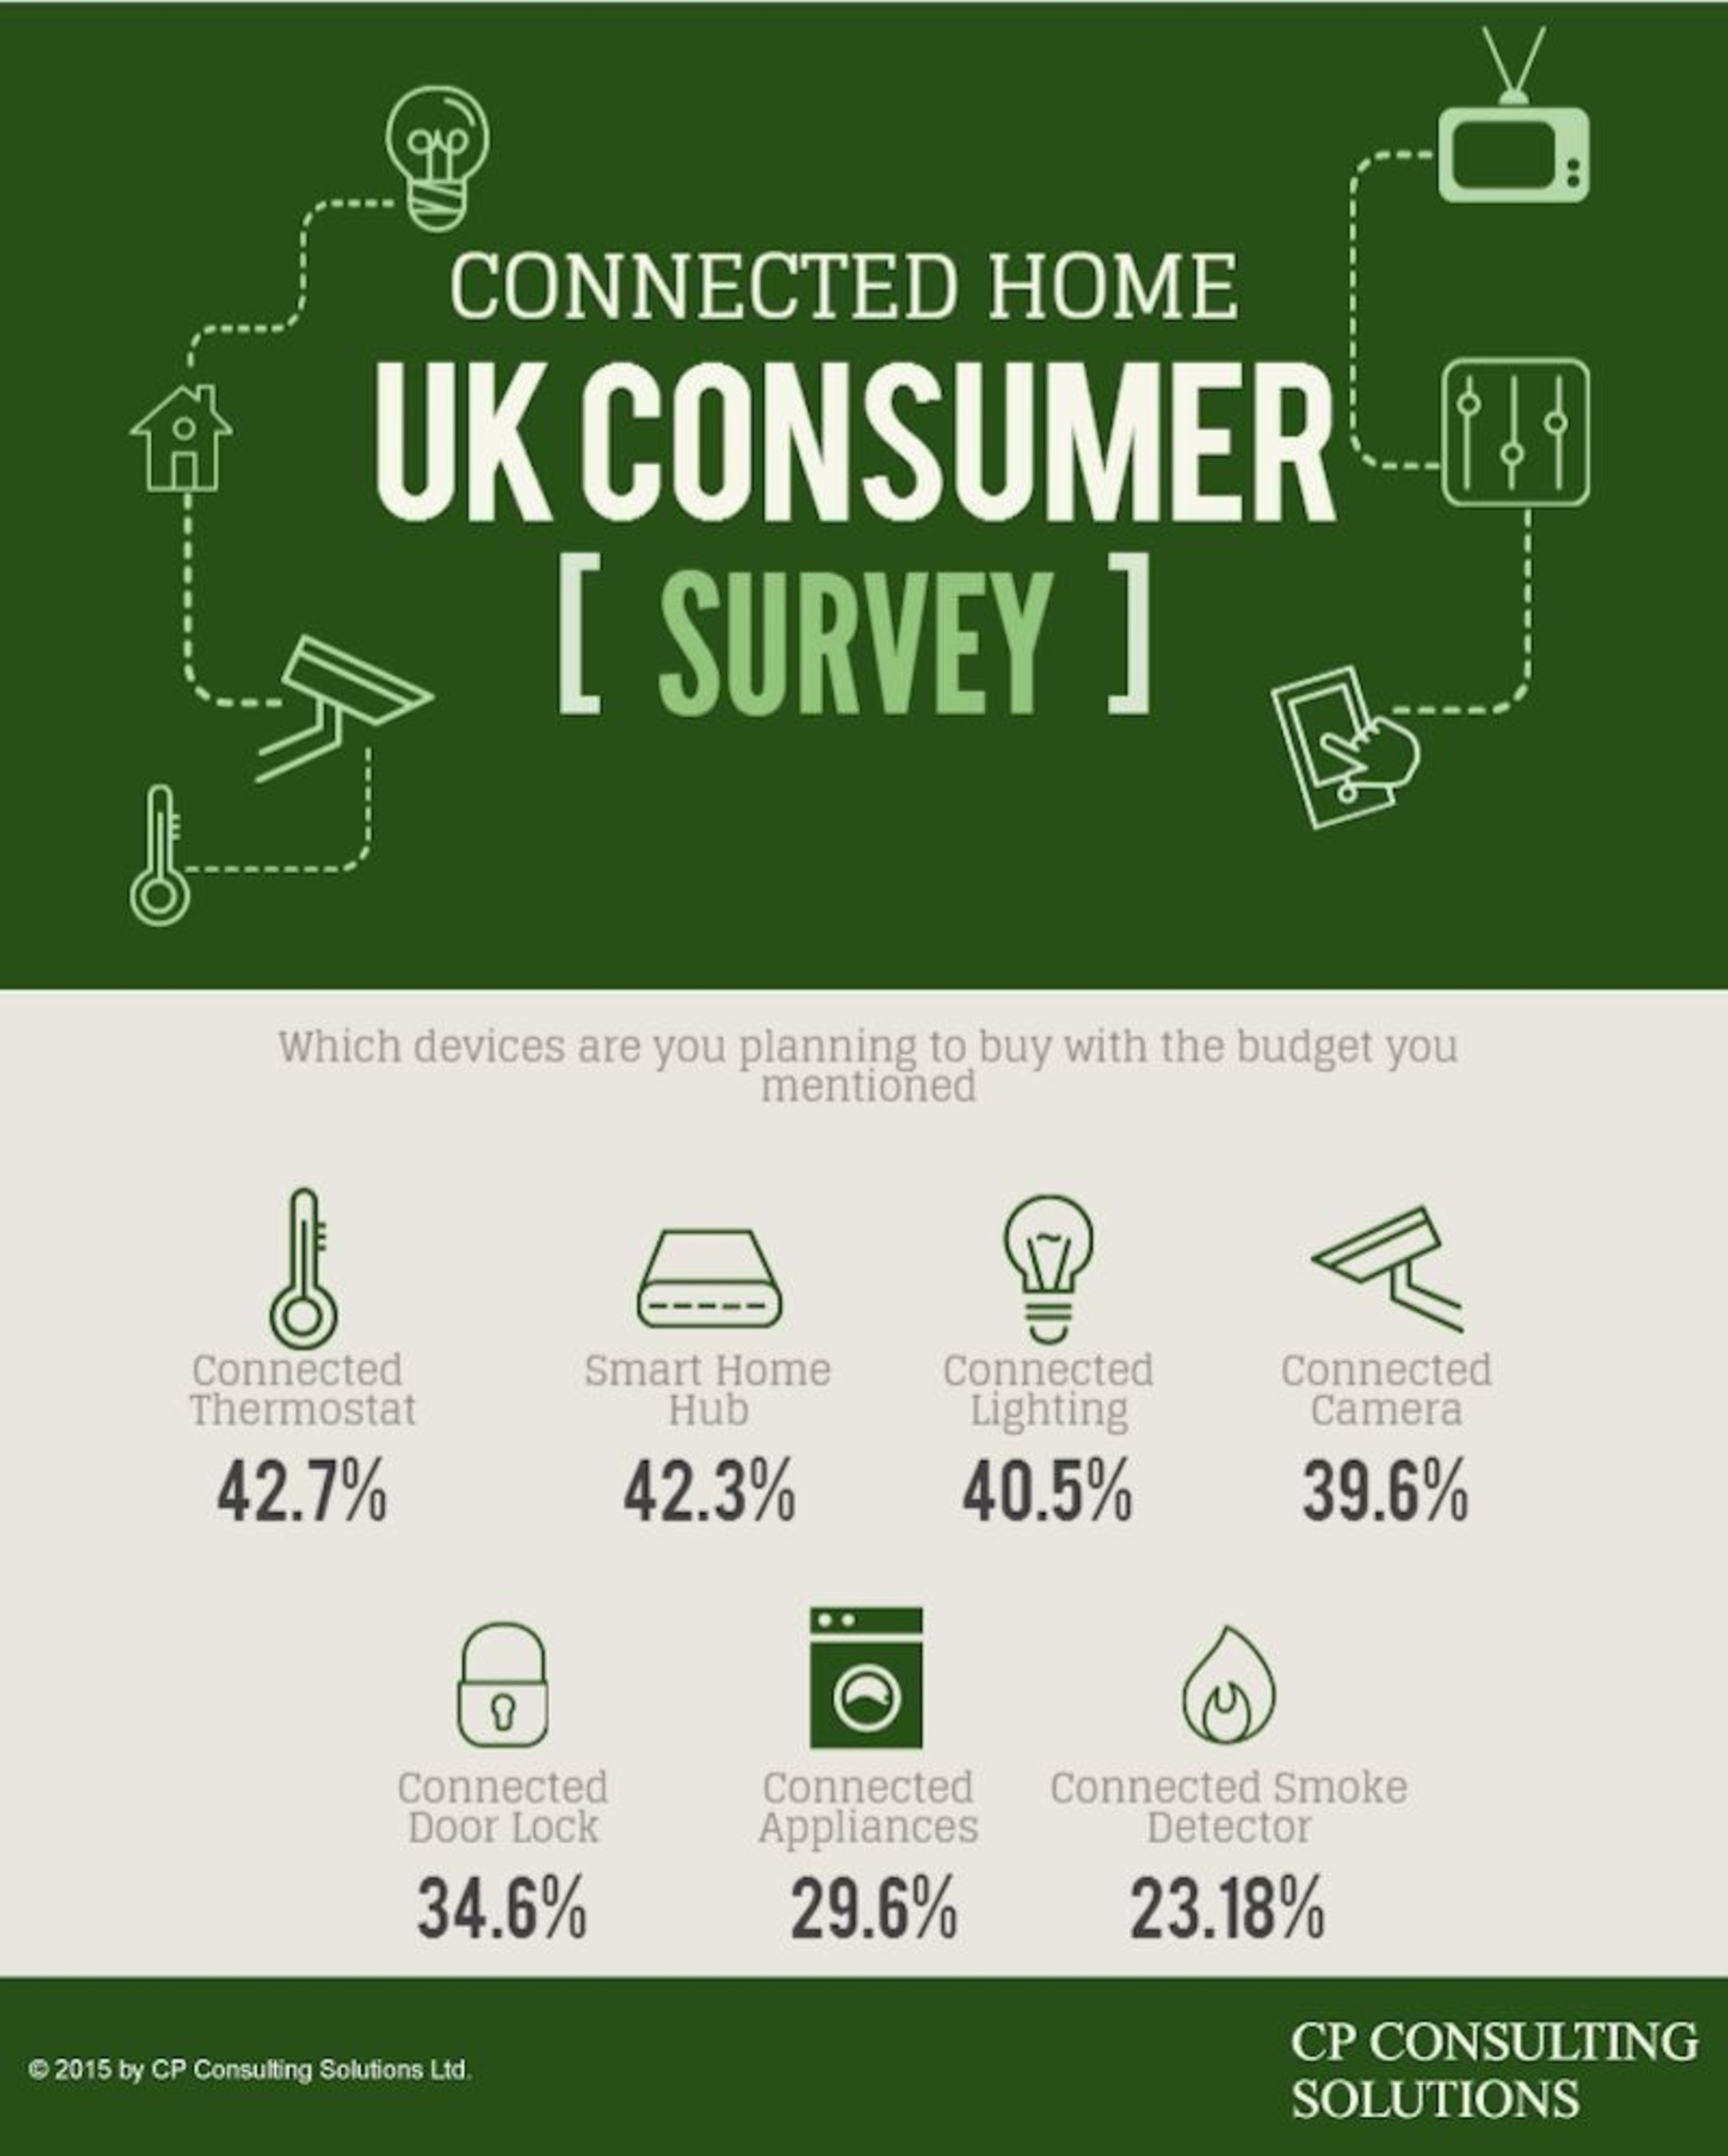 Connected Home: Almost 50% of UK Consumers Are Planning to Buy a Connected Home Product in the Next Year